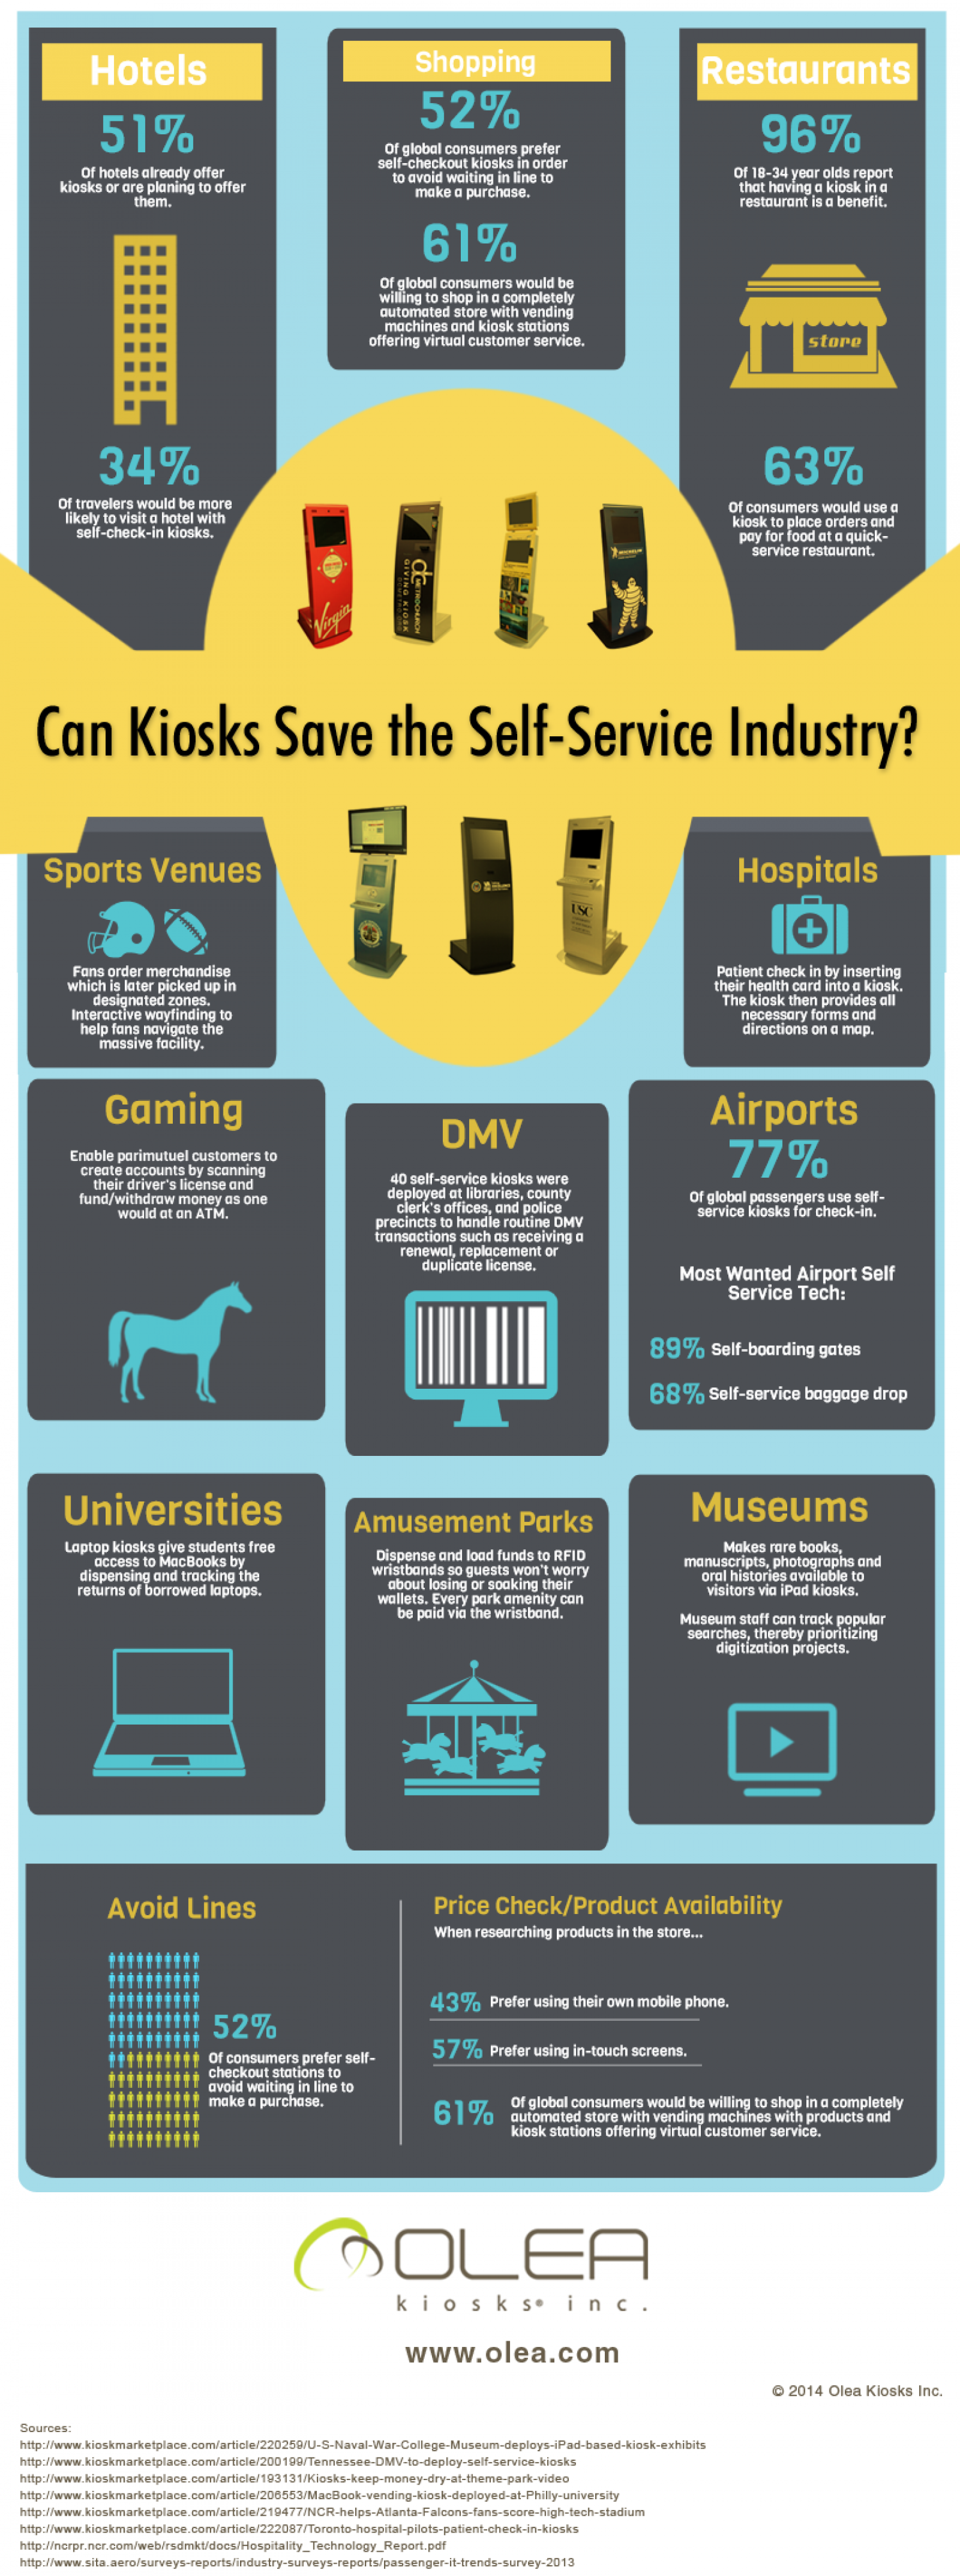 Can Kiosks Save the Self-Service Industry? Infographic